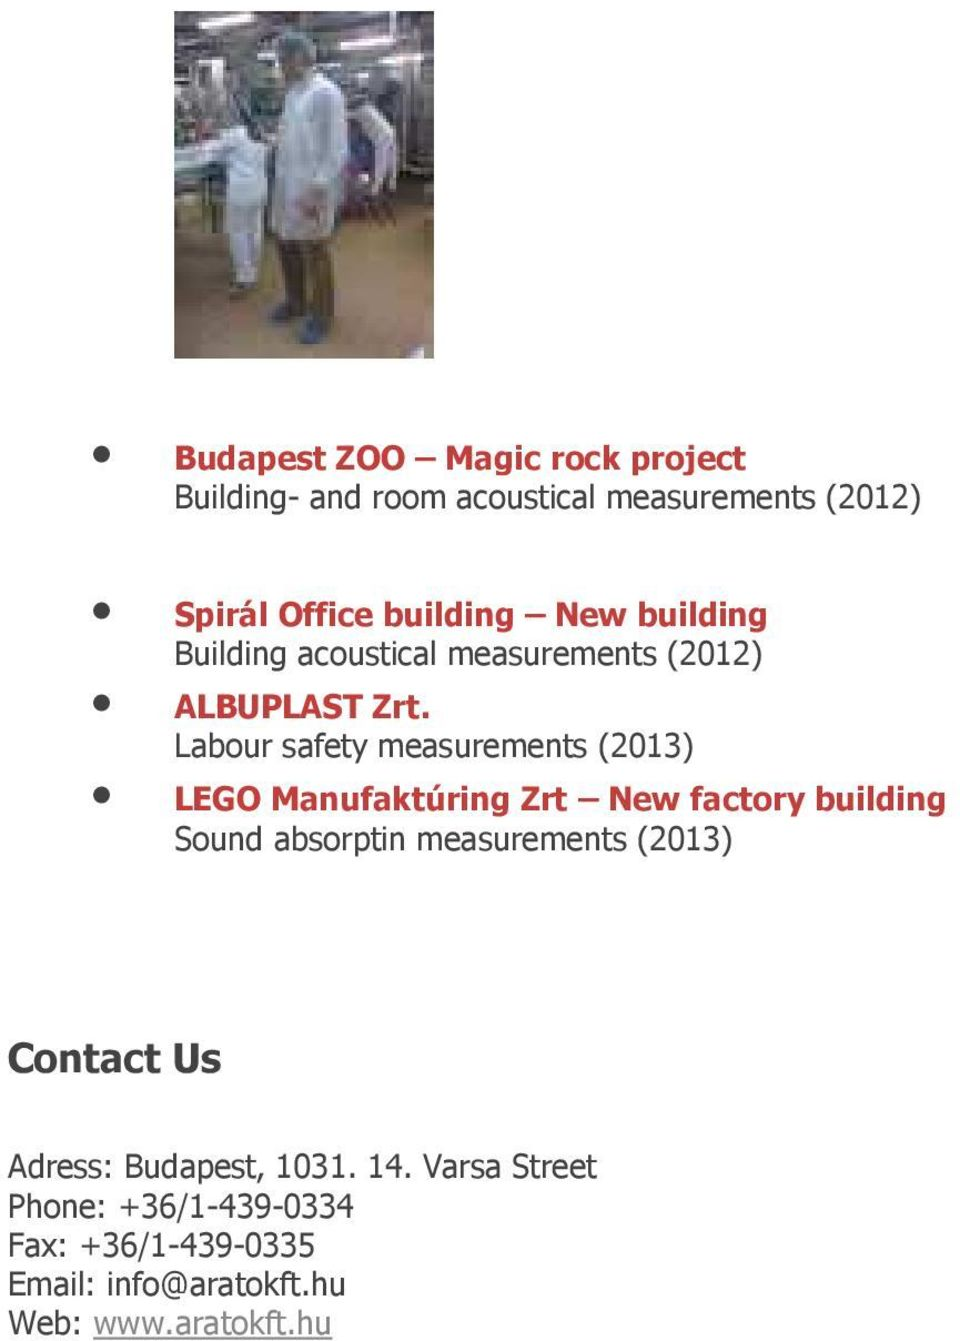 Labour safety measurements (2013) LEGO Manufaktúring Zrt New factory building Sound absorptin measurements